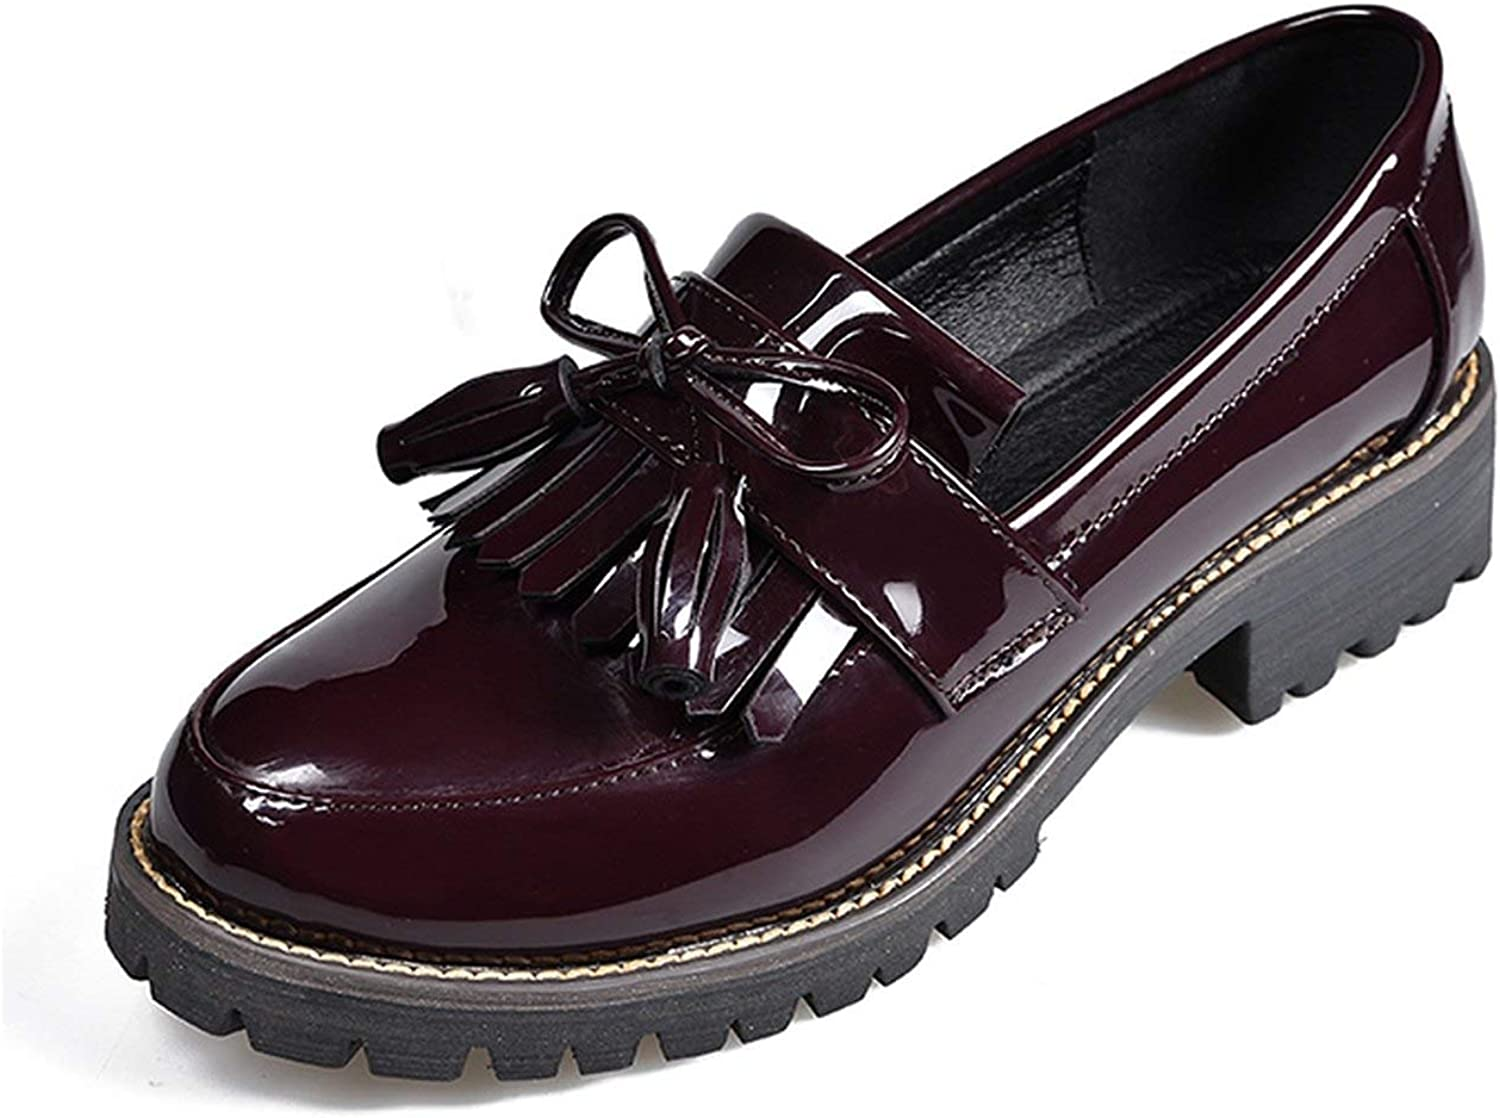 Every kind of beauty Women Low Heels Autumn Woman' shoes Fashion Tassels Patent Leather Platform shoes for Woman Sewing Slip On Female Footwear